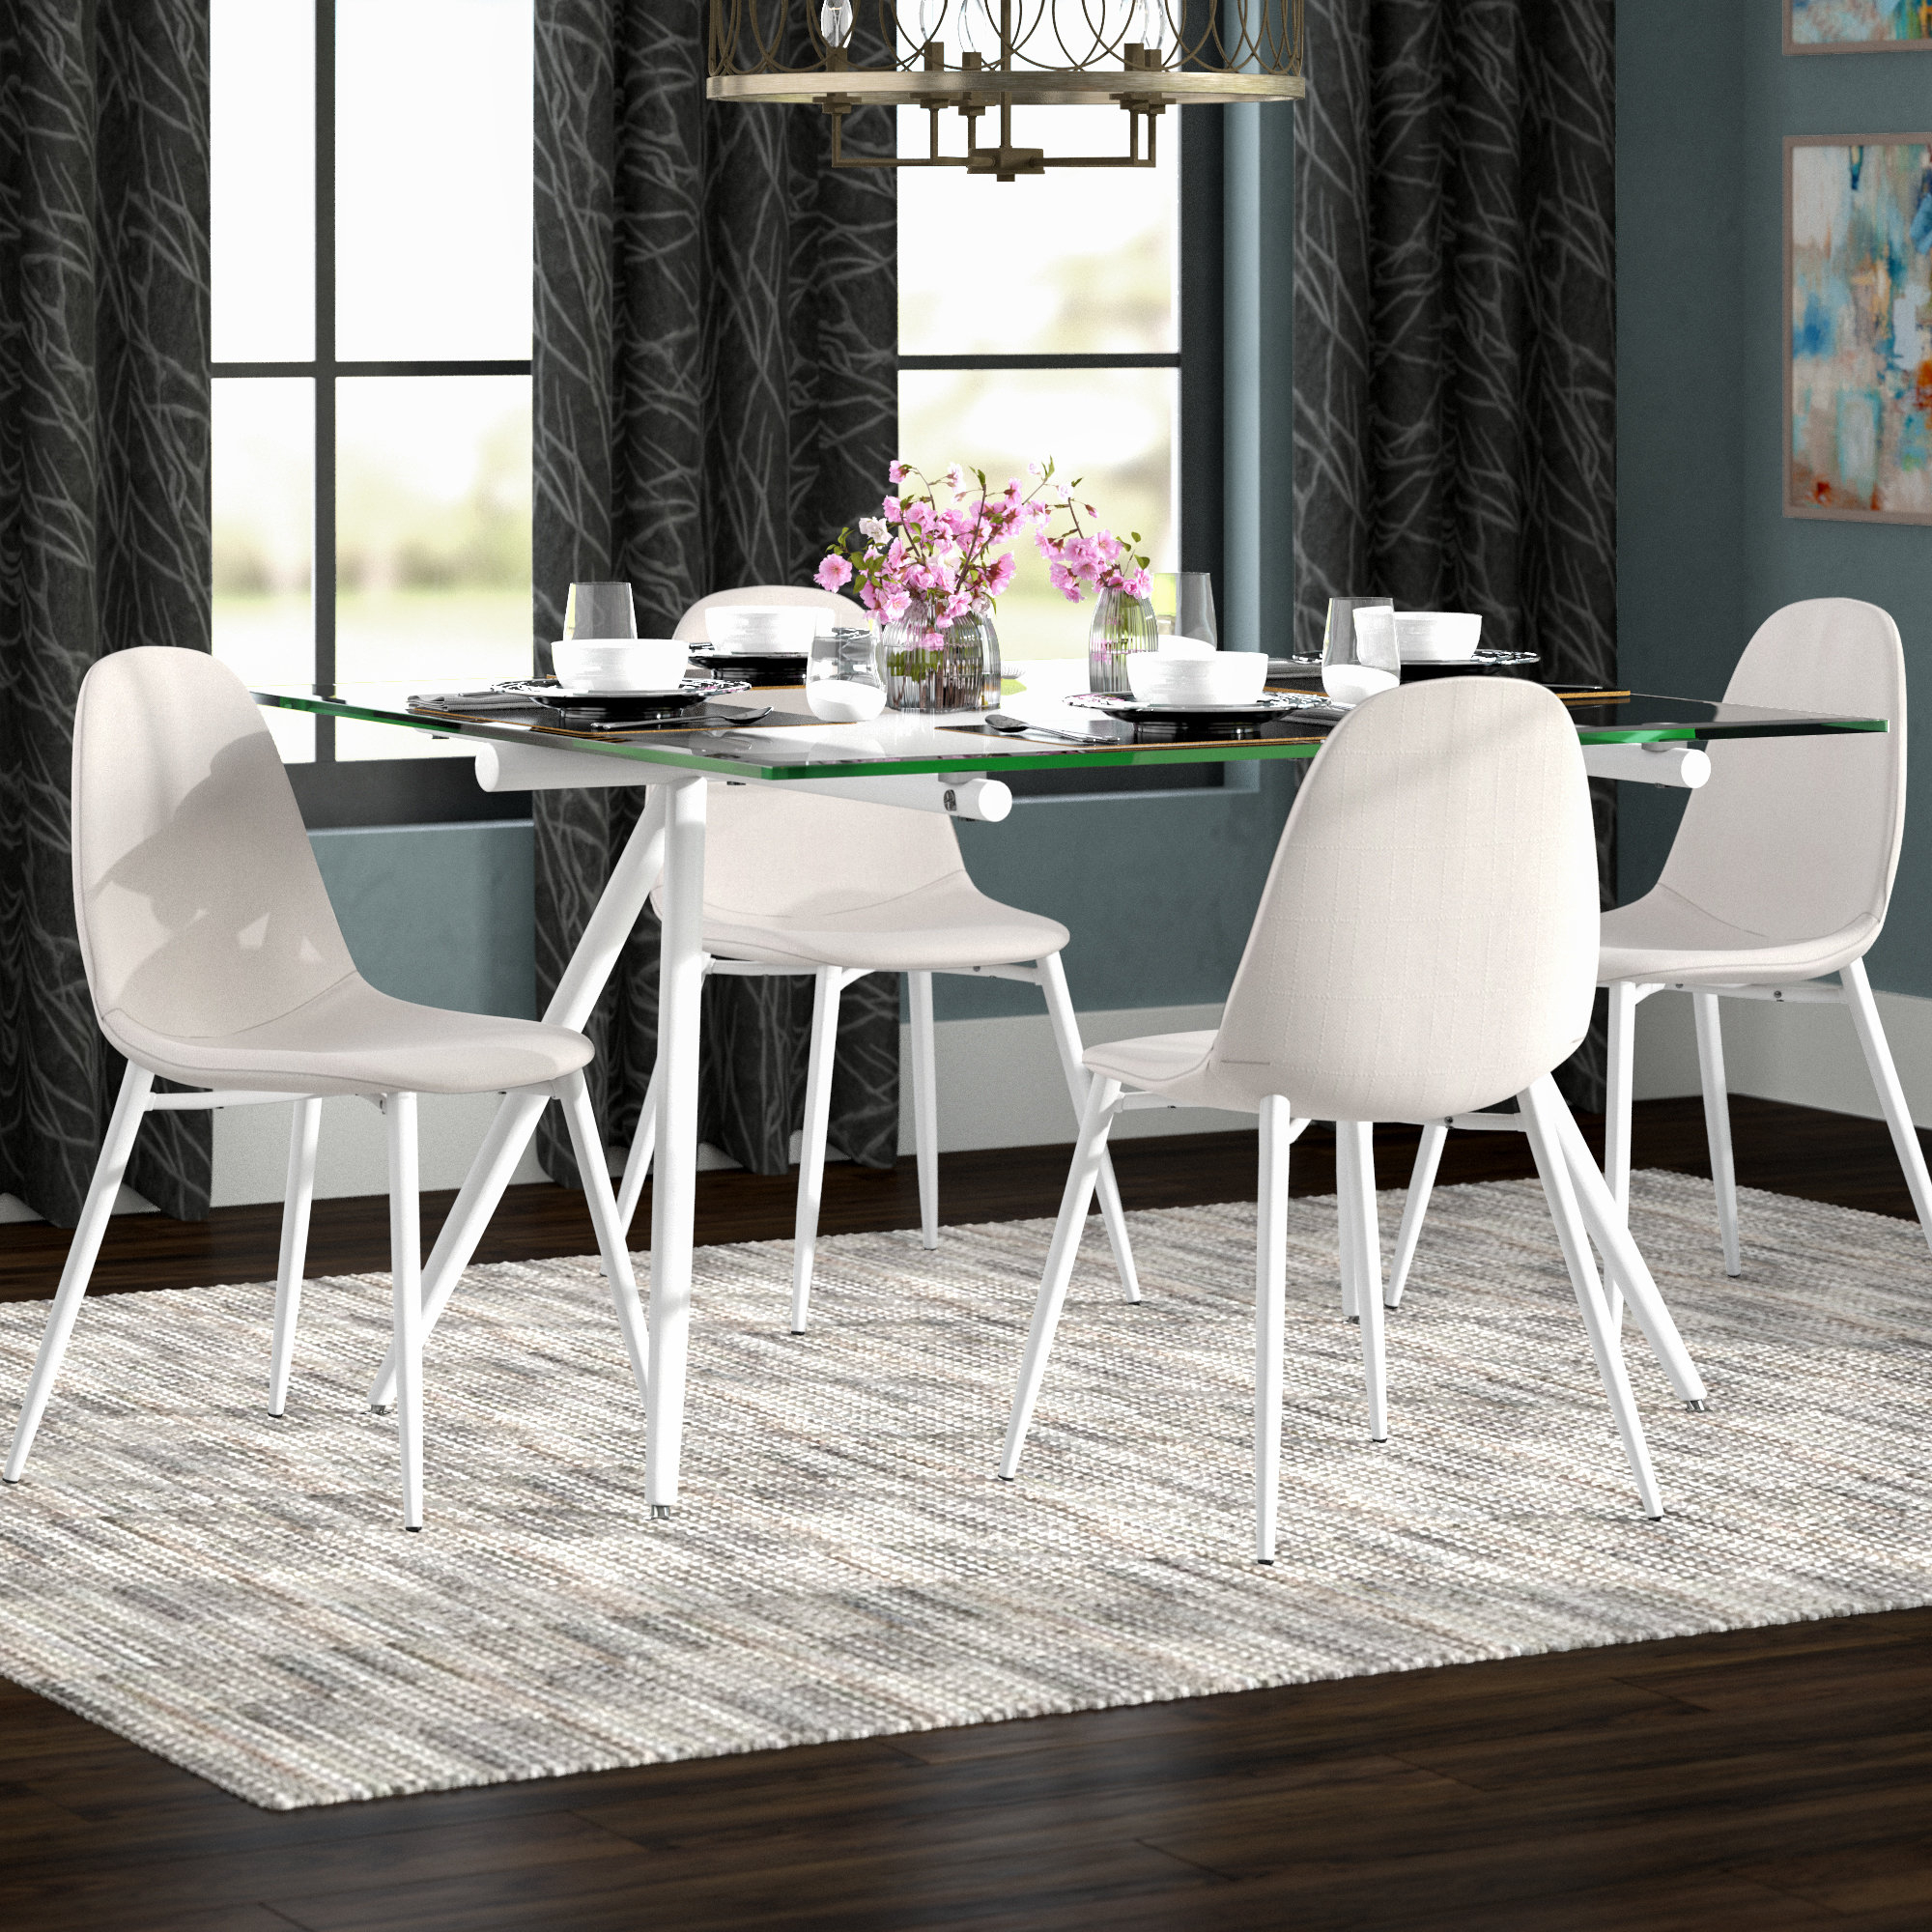 Noyes 5 Piece Dining Sets With Well Known Woodhouse 5 Piece Dining Set (View 16 of 20)